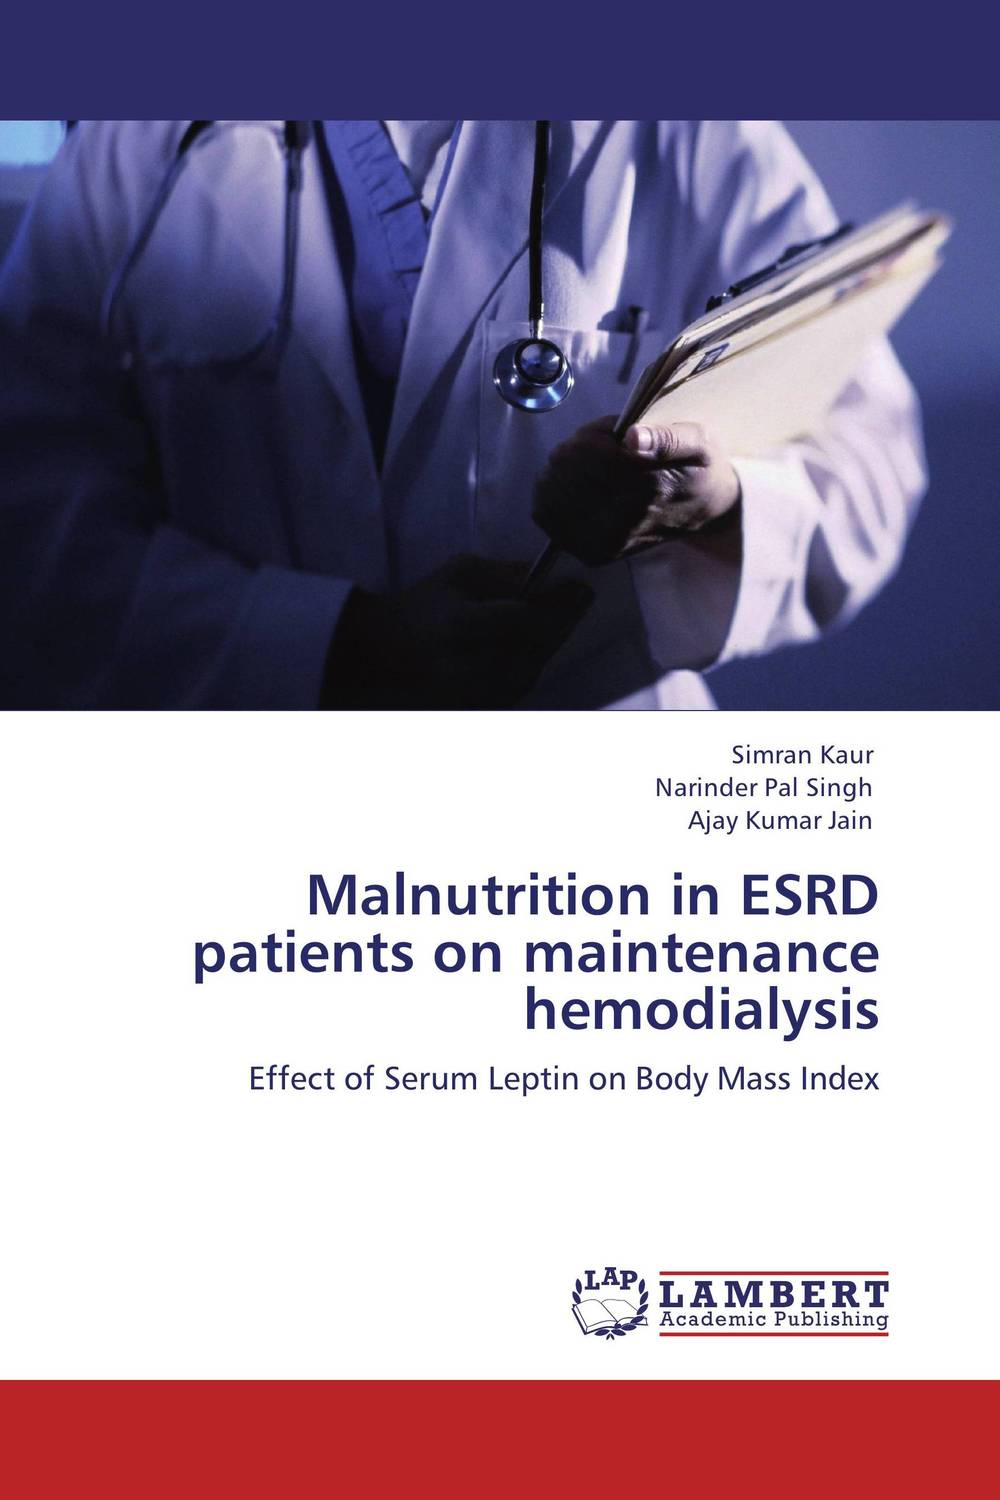 Malnutrition in ESRD patients on maintenance hemodialysis tribal malnutrition in india